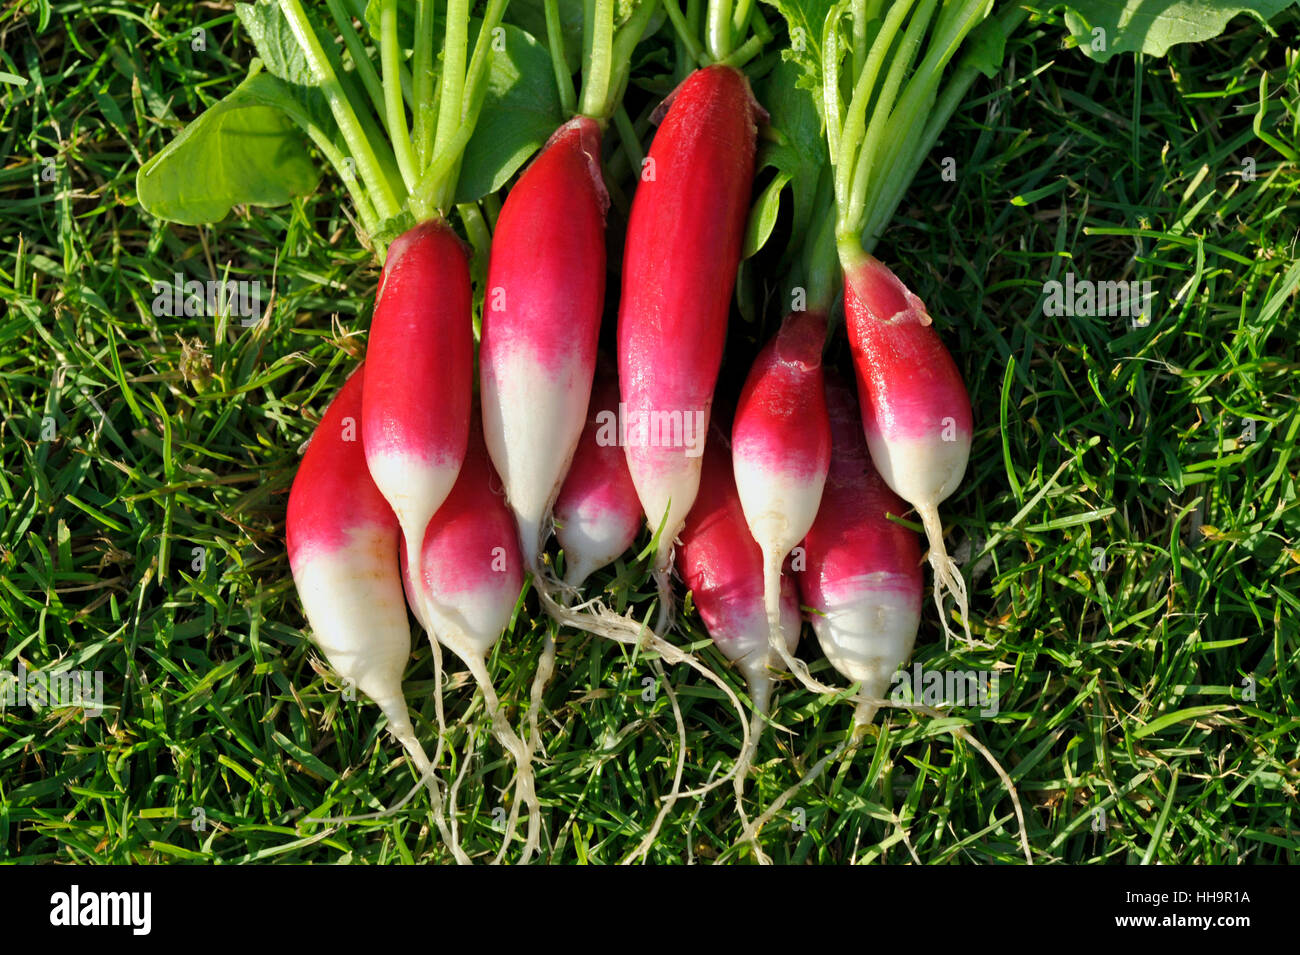 Bunch of freshly picked and washed salad radishes, Variety French Breakfast, Raphanus raphanistrum sativus. - Stock Image